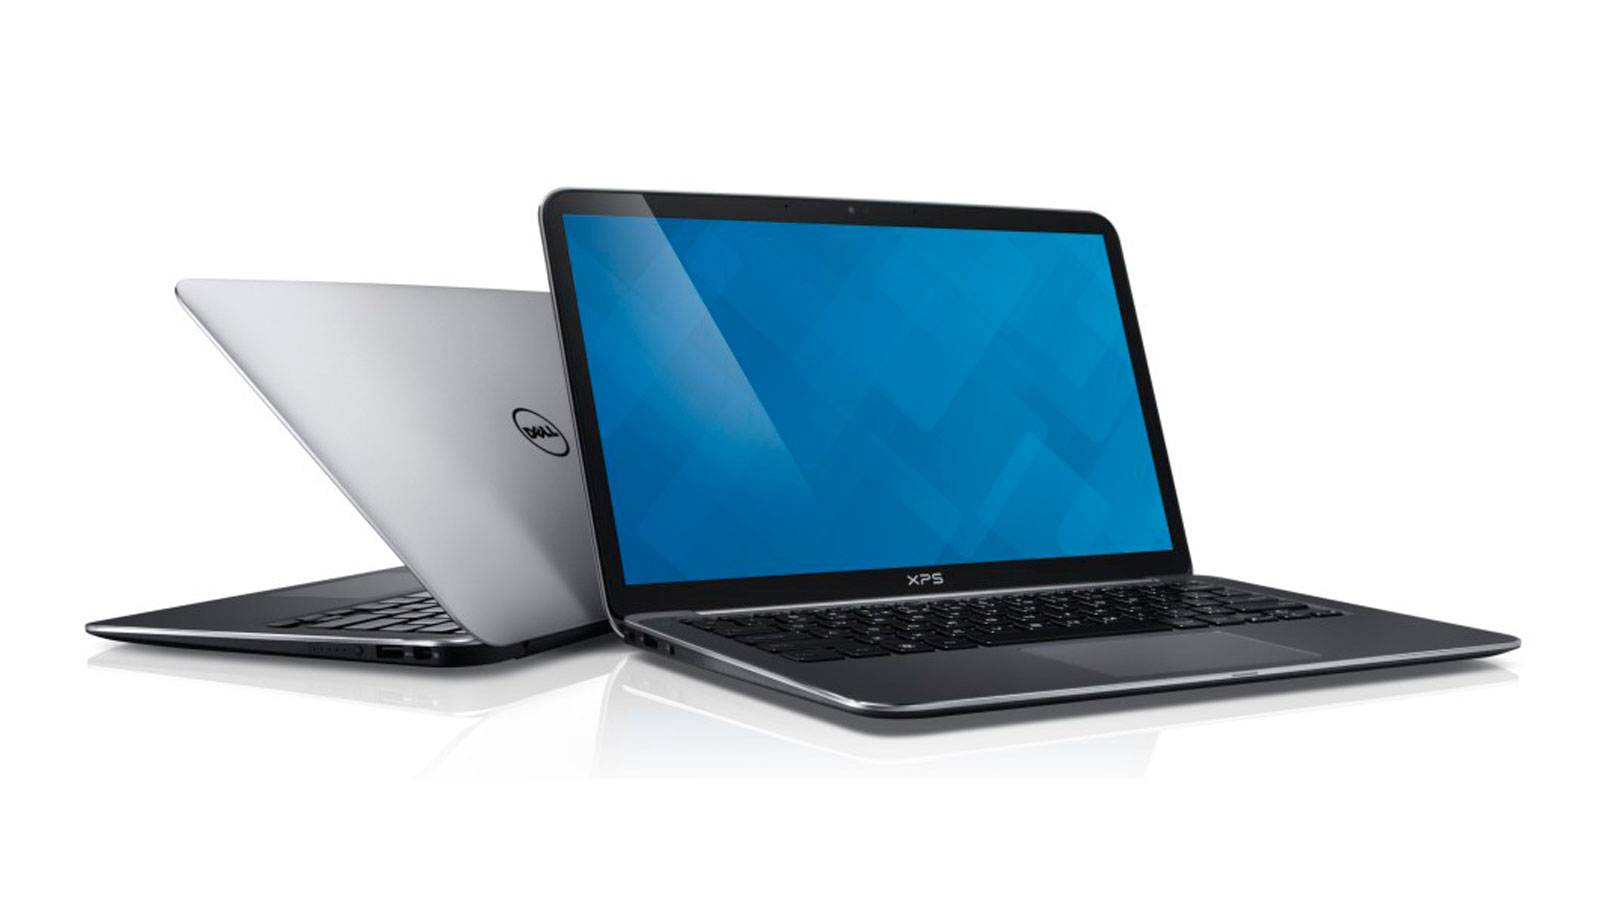 Dell Updates 2013 Line of XPS Laptops with Ultra-High Resolution Displays